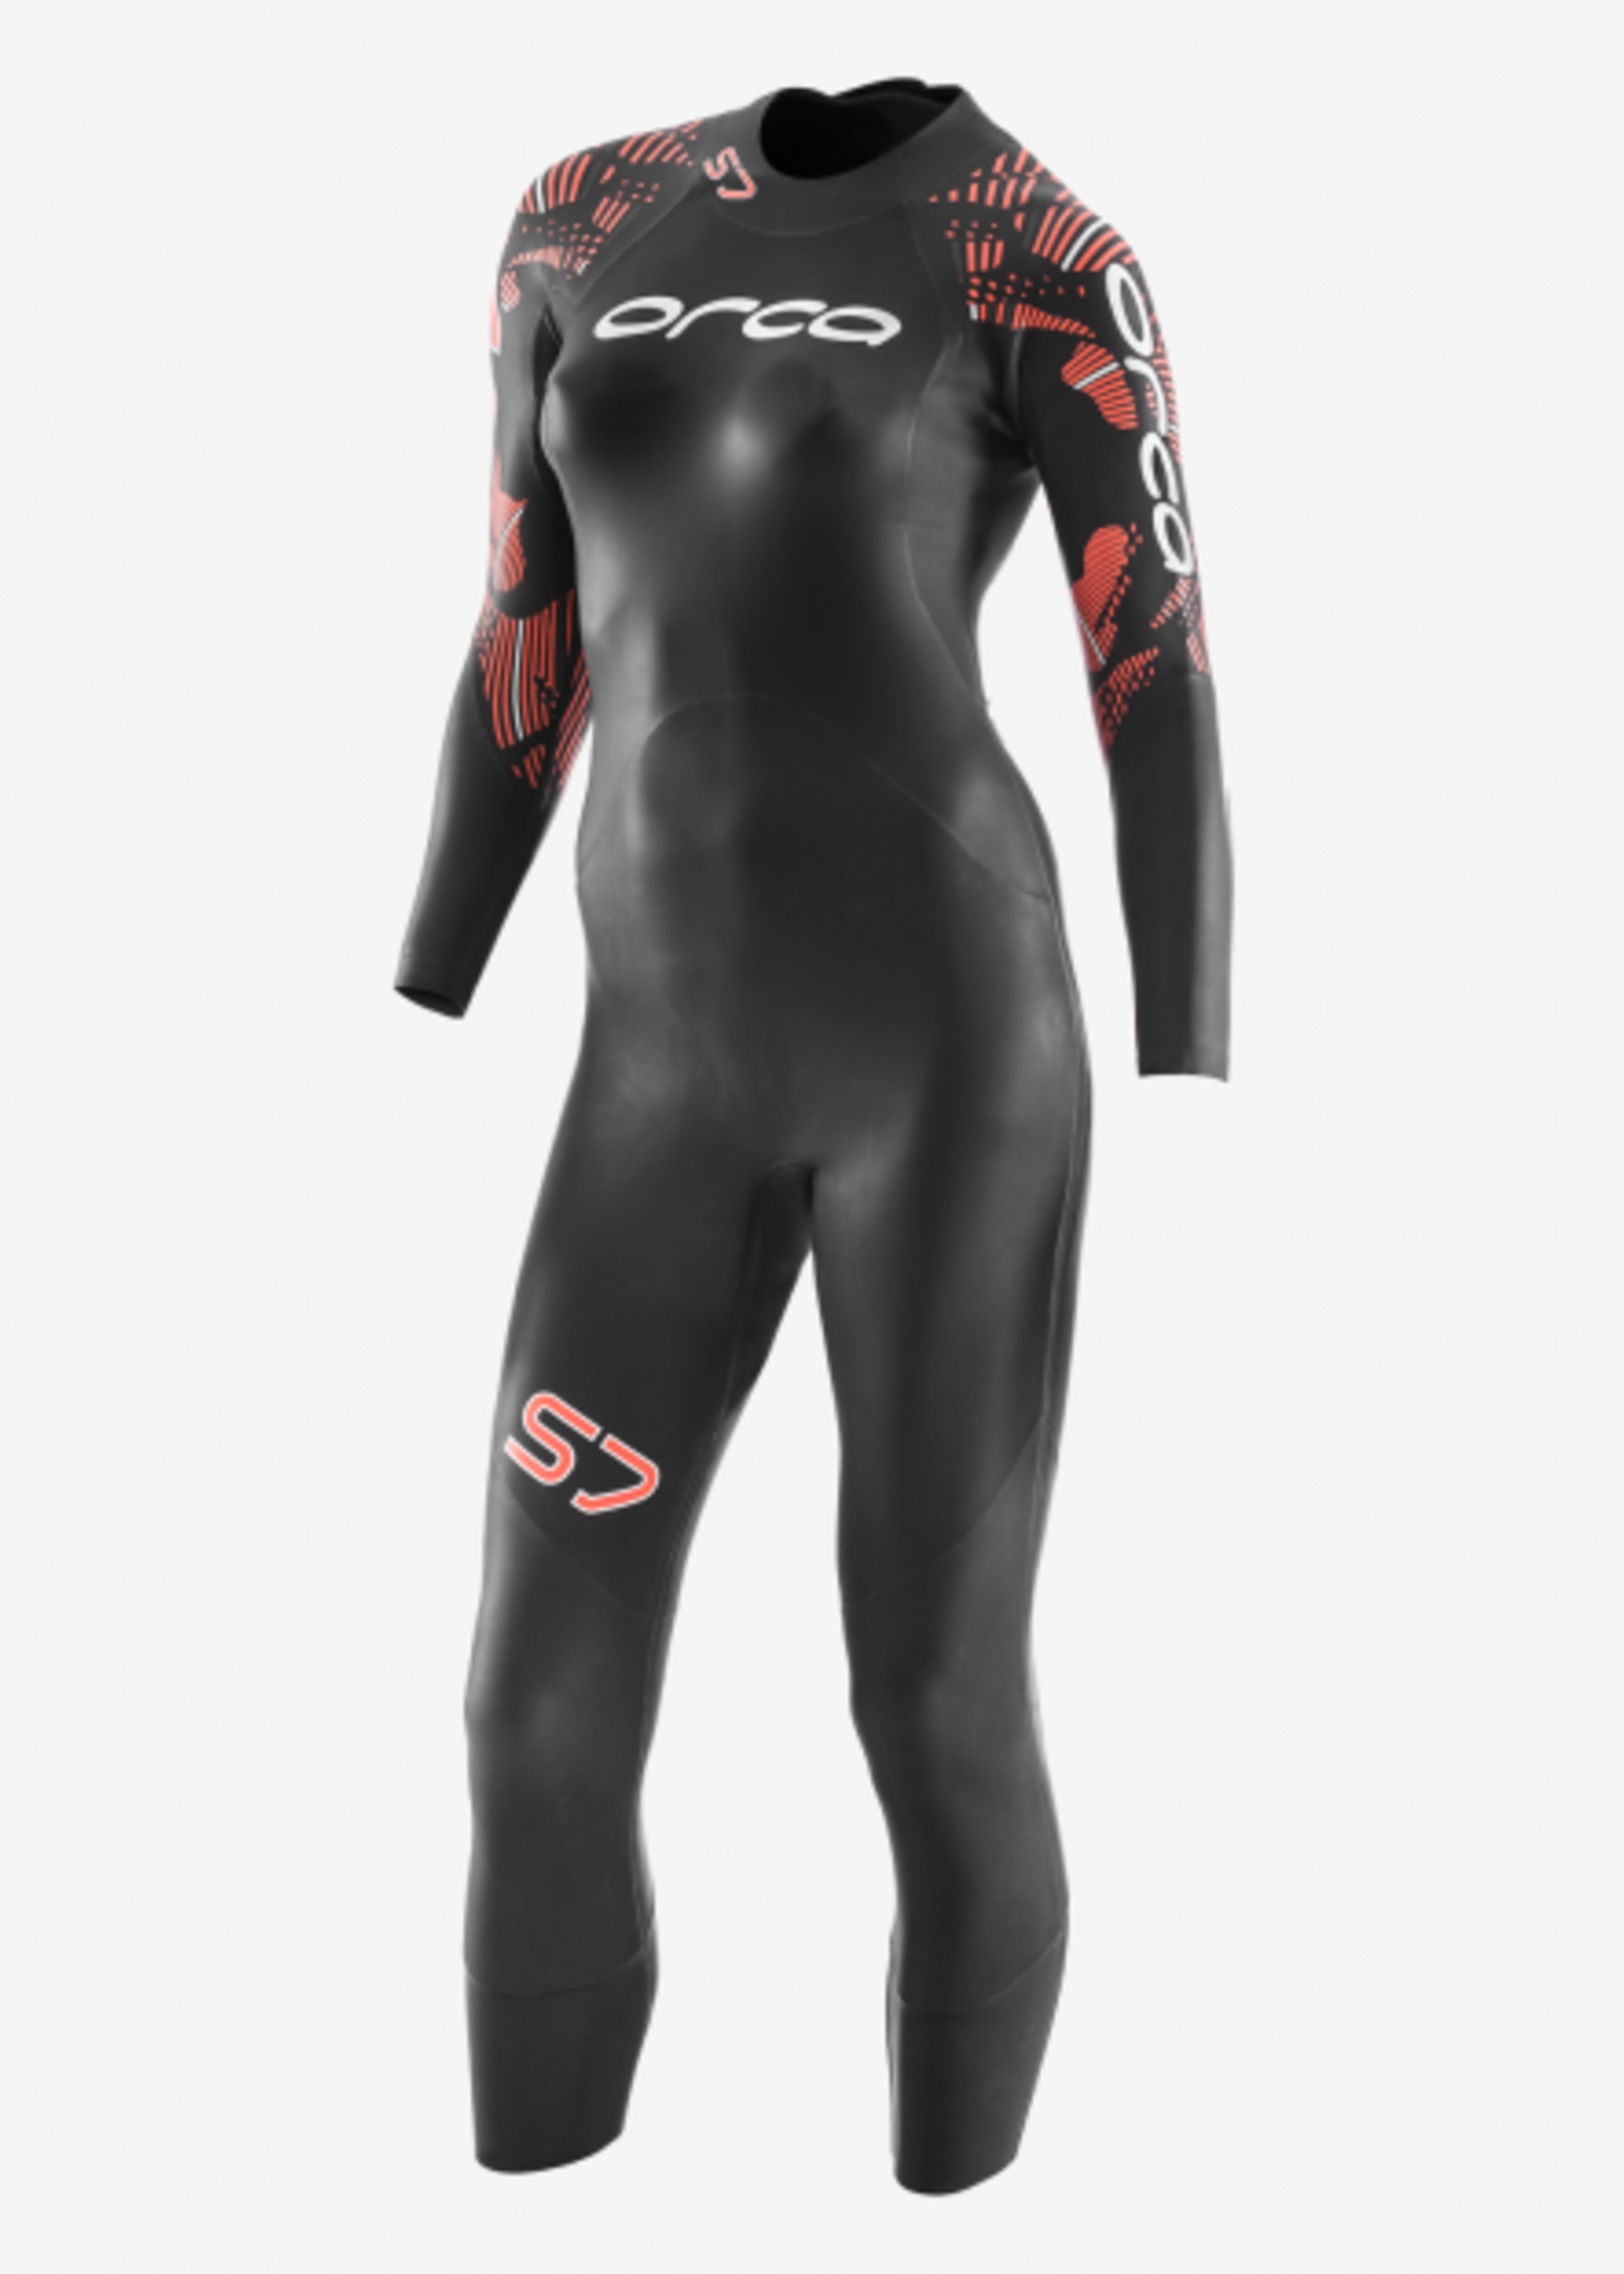 0rca Orca S7 Wetsuit - Womens